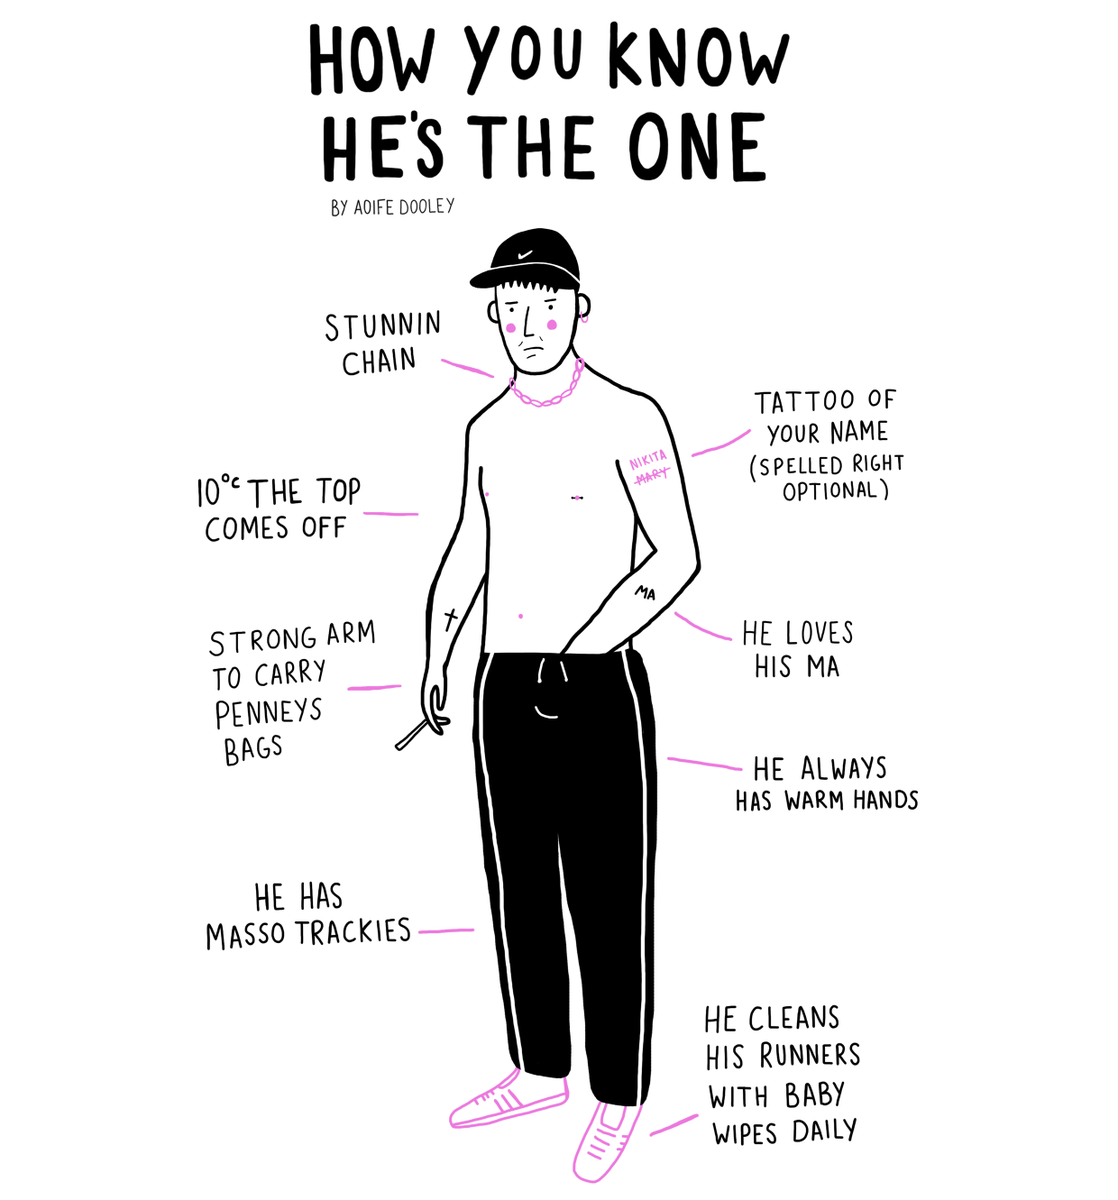 How to know he is the one